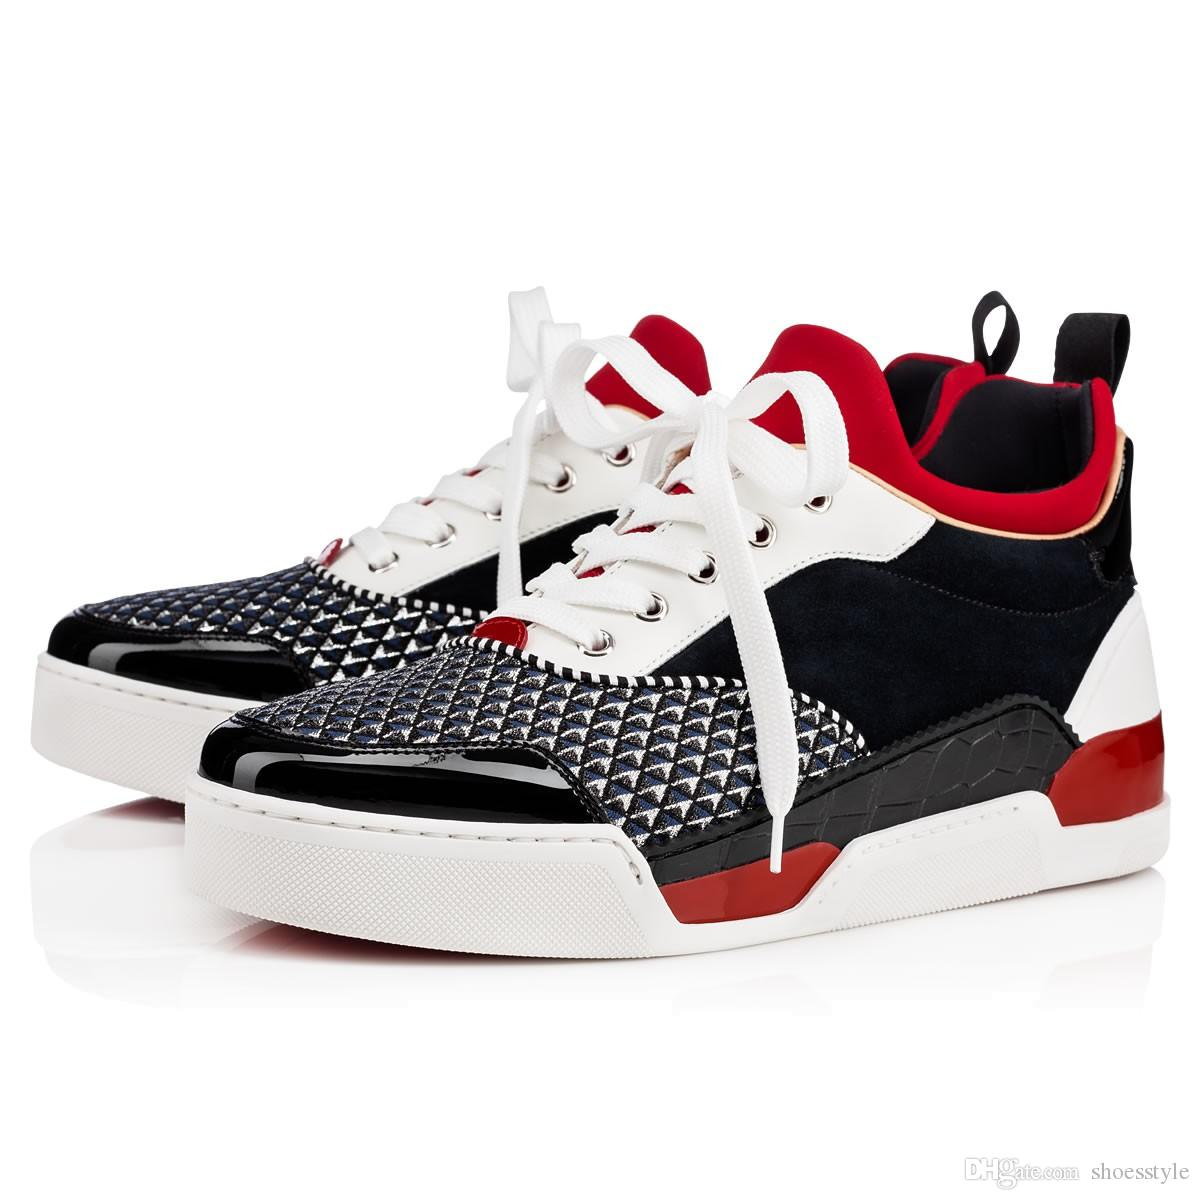 Factory Price - Low Top With Luxurious Loubikick Sneakers Flat,Red Bottom  90s Basketball Shoe Perfect Quality Casual Outdoor Sports Causal Shoes  Sneakers ...